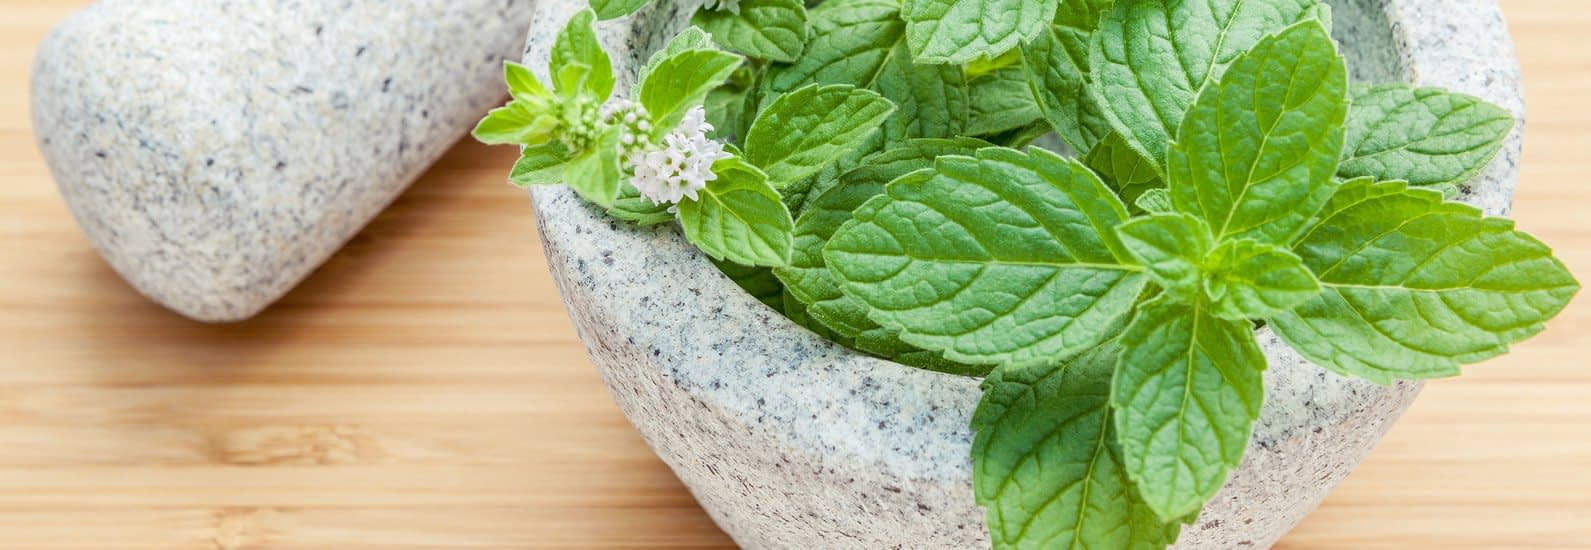 The detox benefits of peppermint